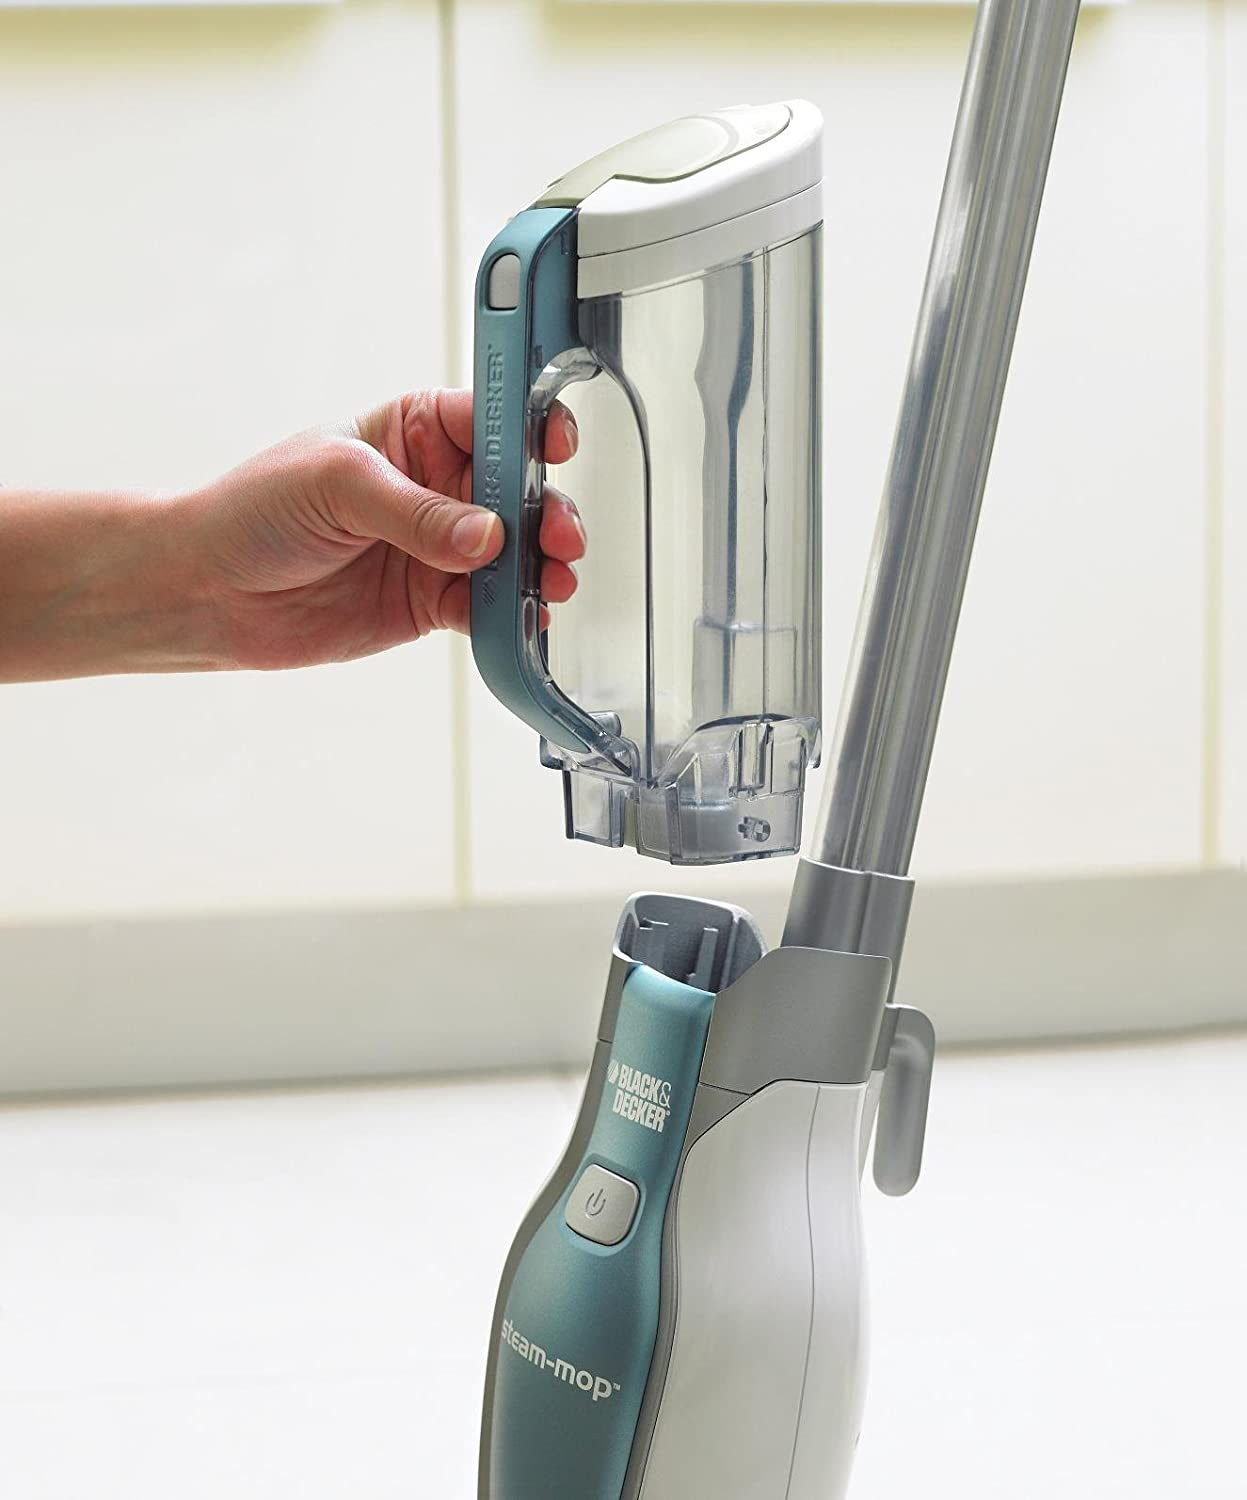 black and decker 1600w deluxe steam mop hand command fsm1630nd new ebay. Black Bedroom Furniture Sets. Home Design Ideas